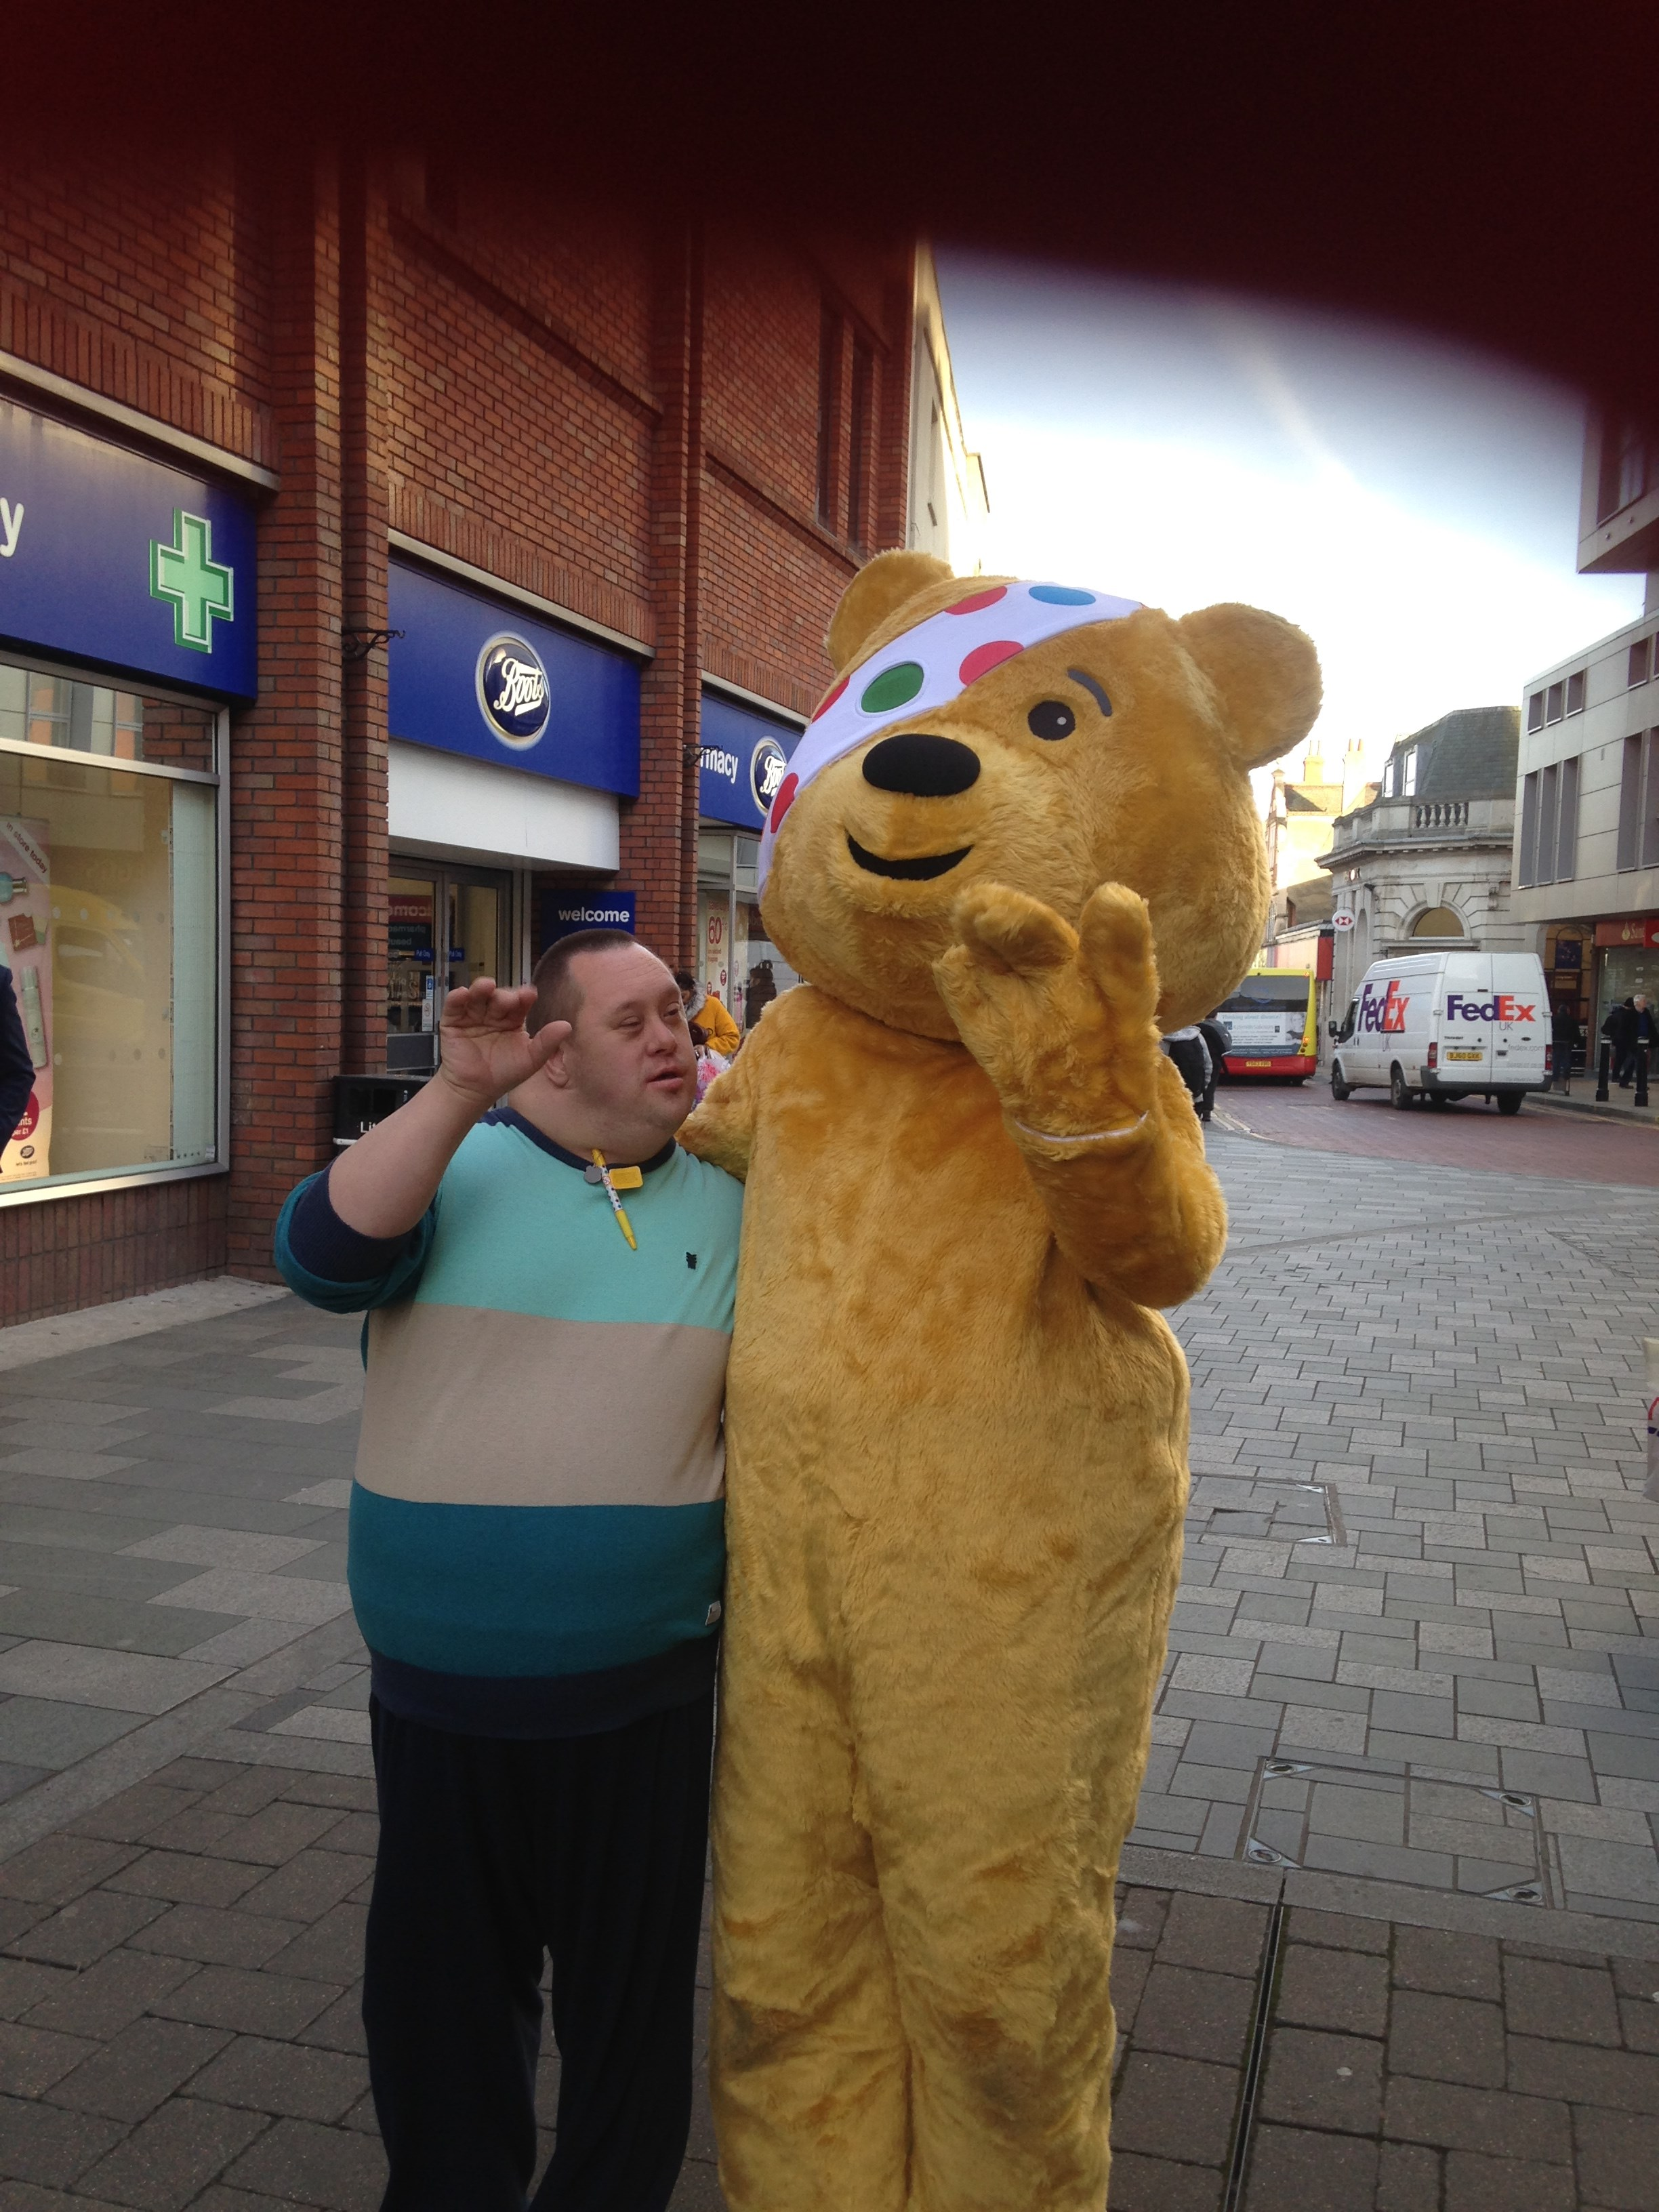 A service user from Reading posing with Pudsy bear